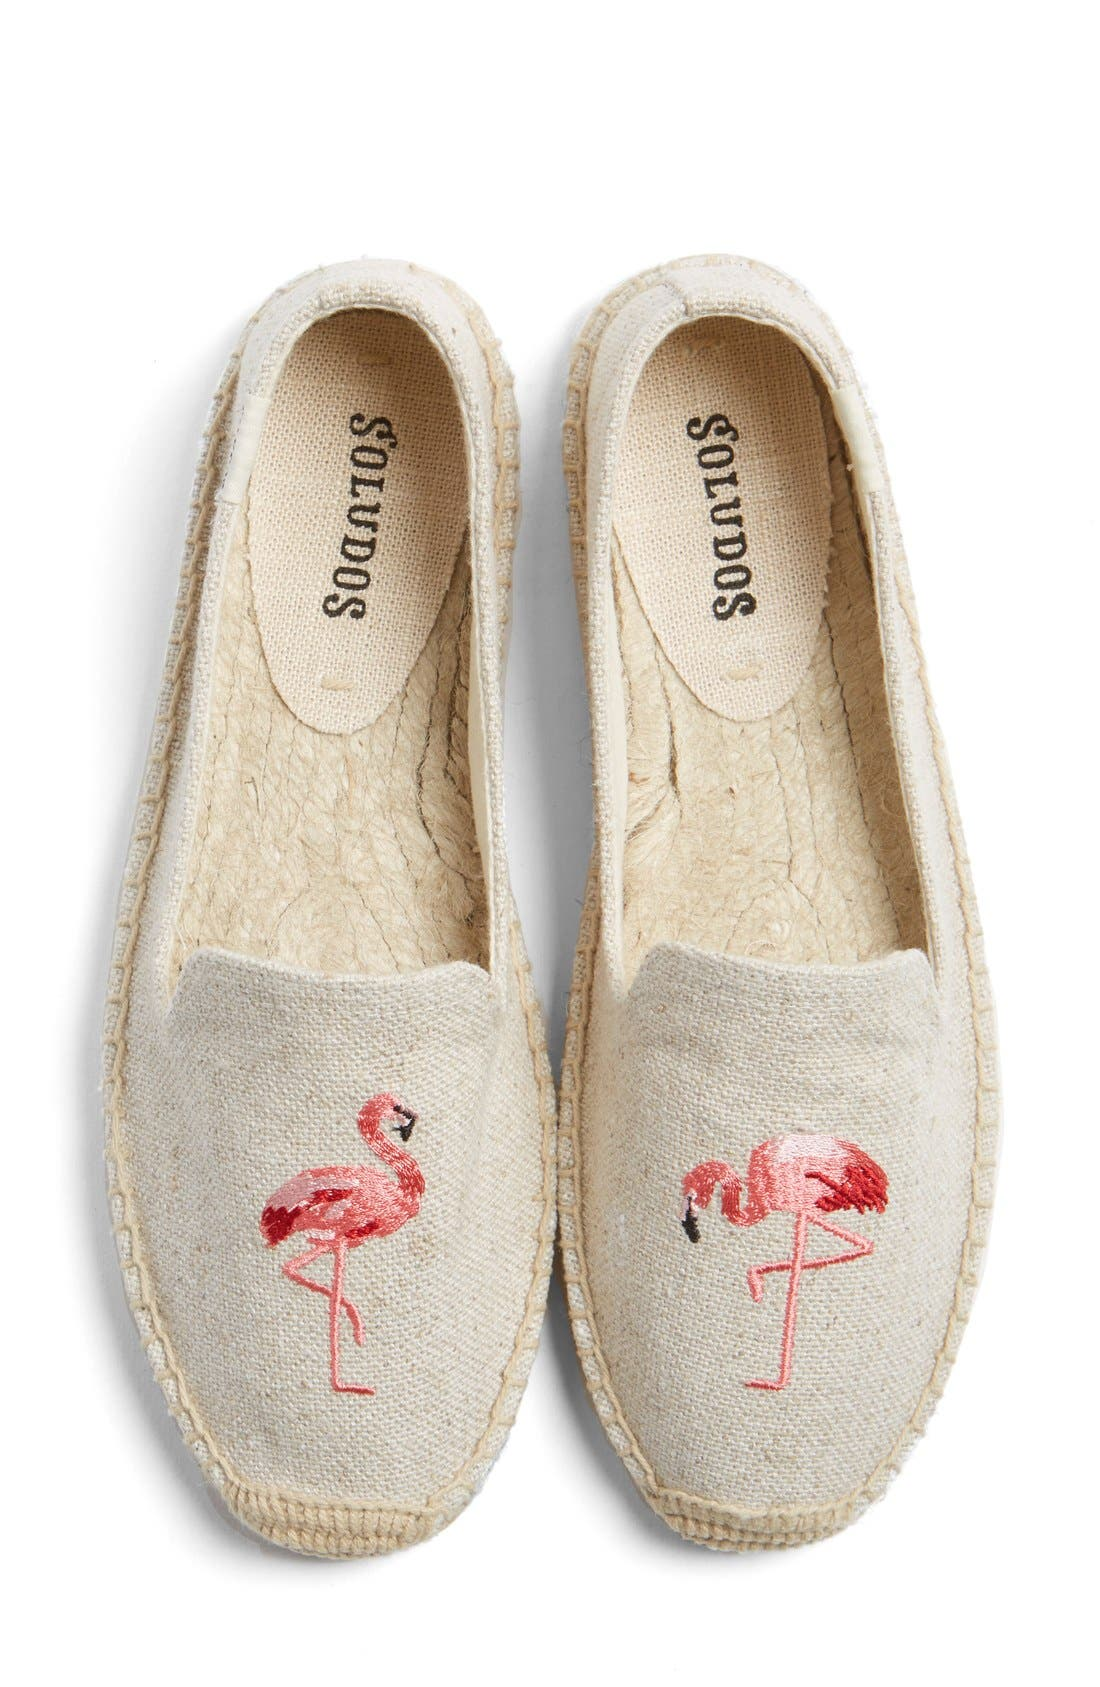 Alternate Image 1 Selected - Soludos Espadrille Slip-On (Women)